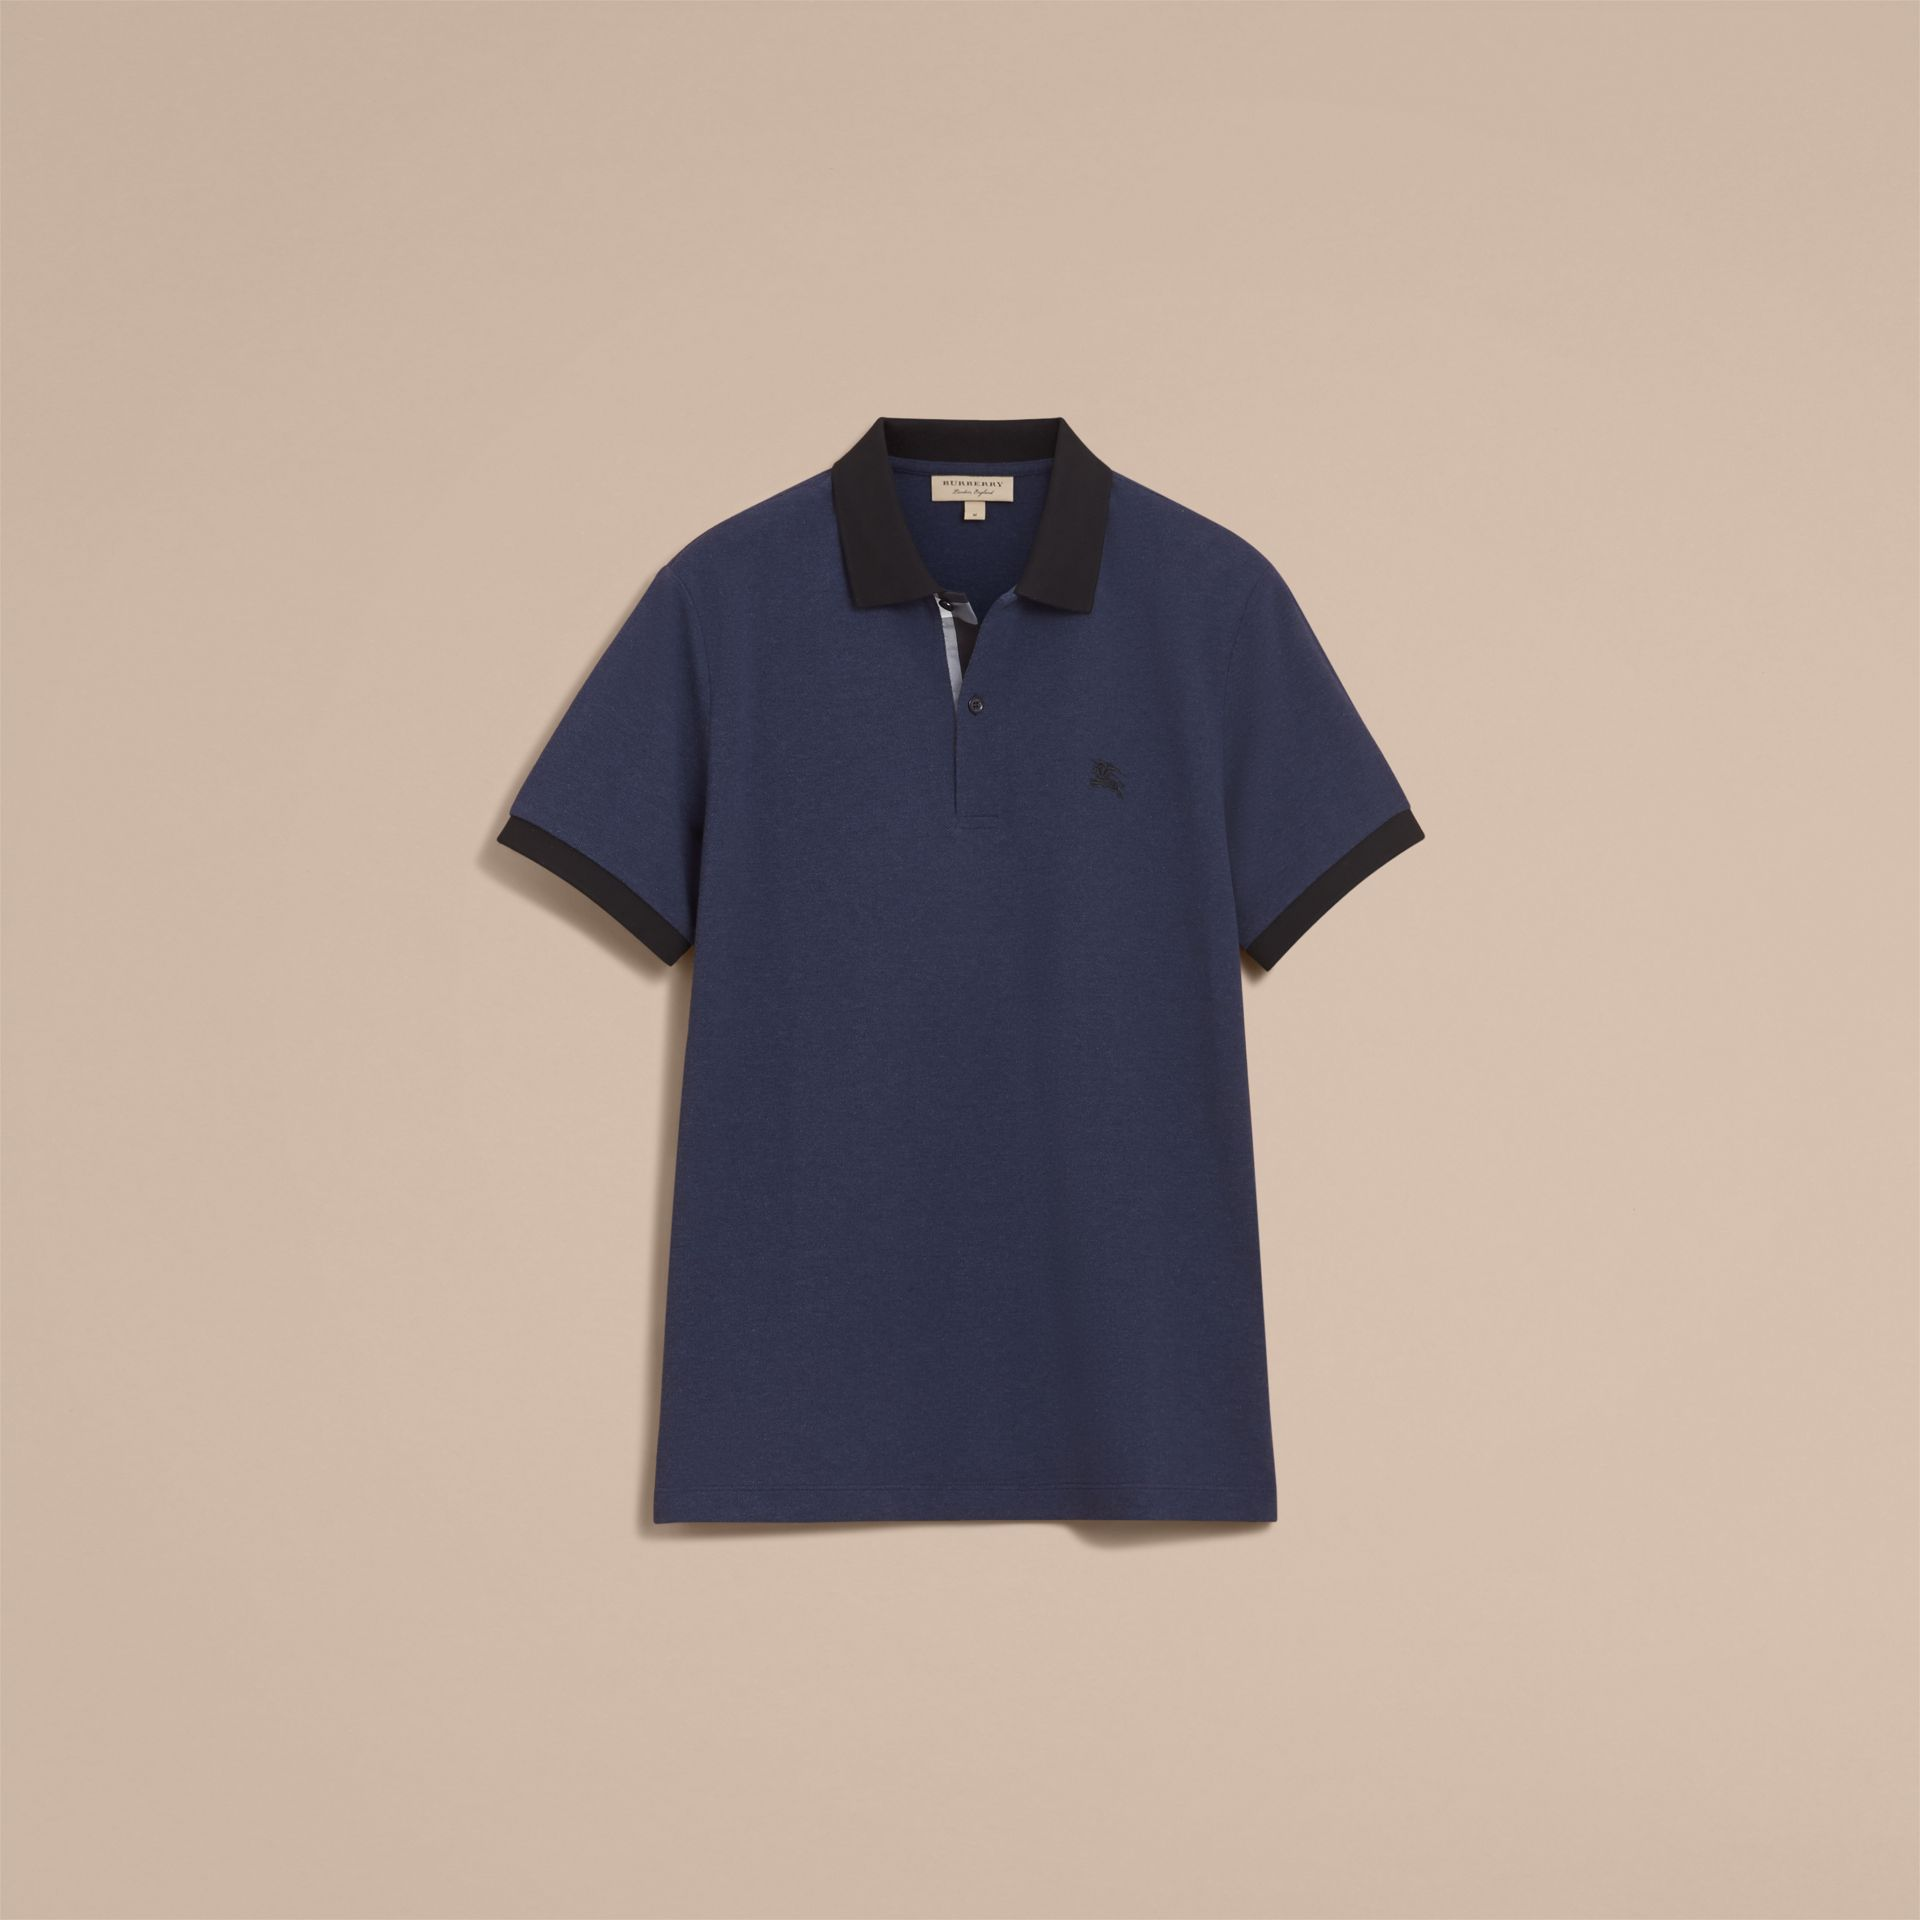 Two-tone Check Placket Cotton Piqué Polo Shirt in Navy Melange - Men | Burberry - gallery image 4